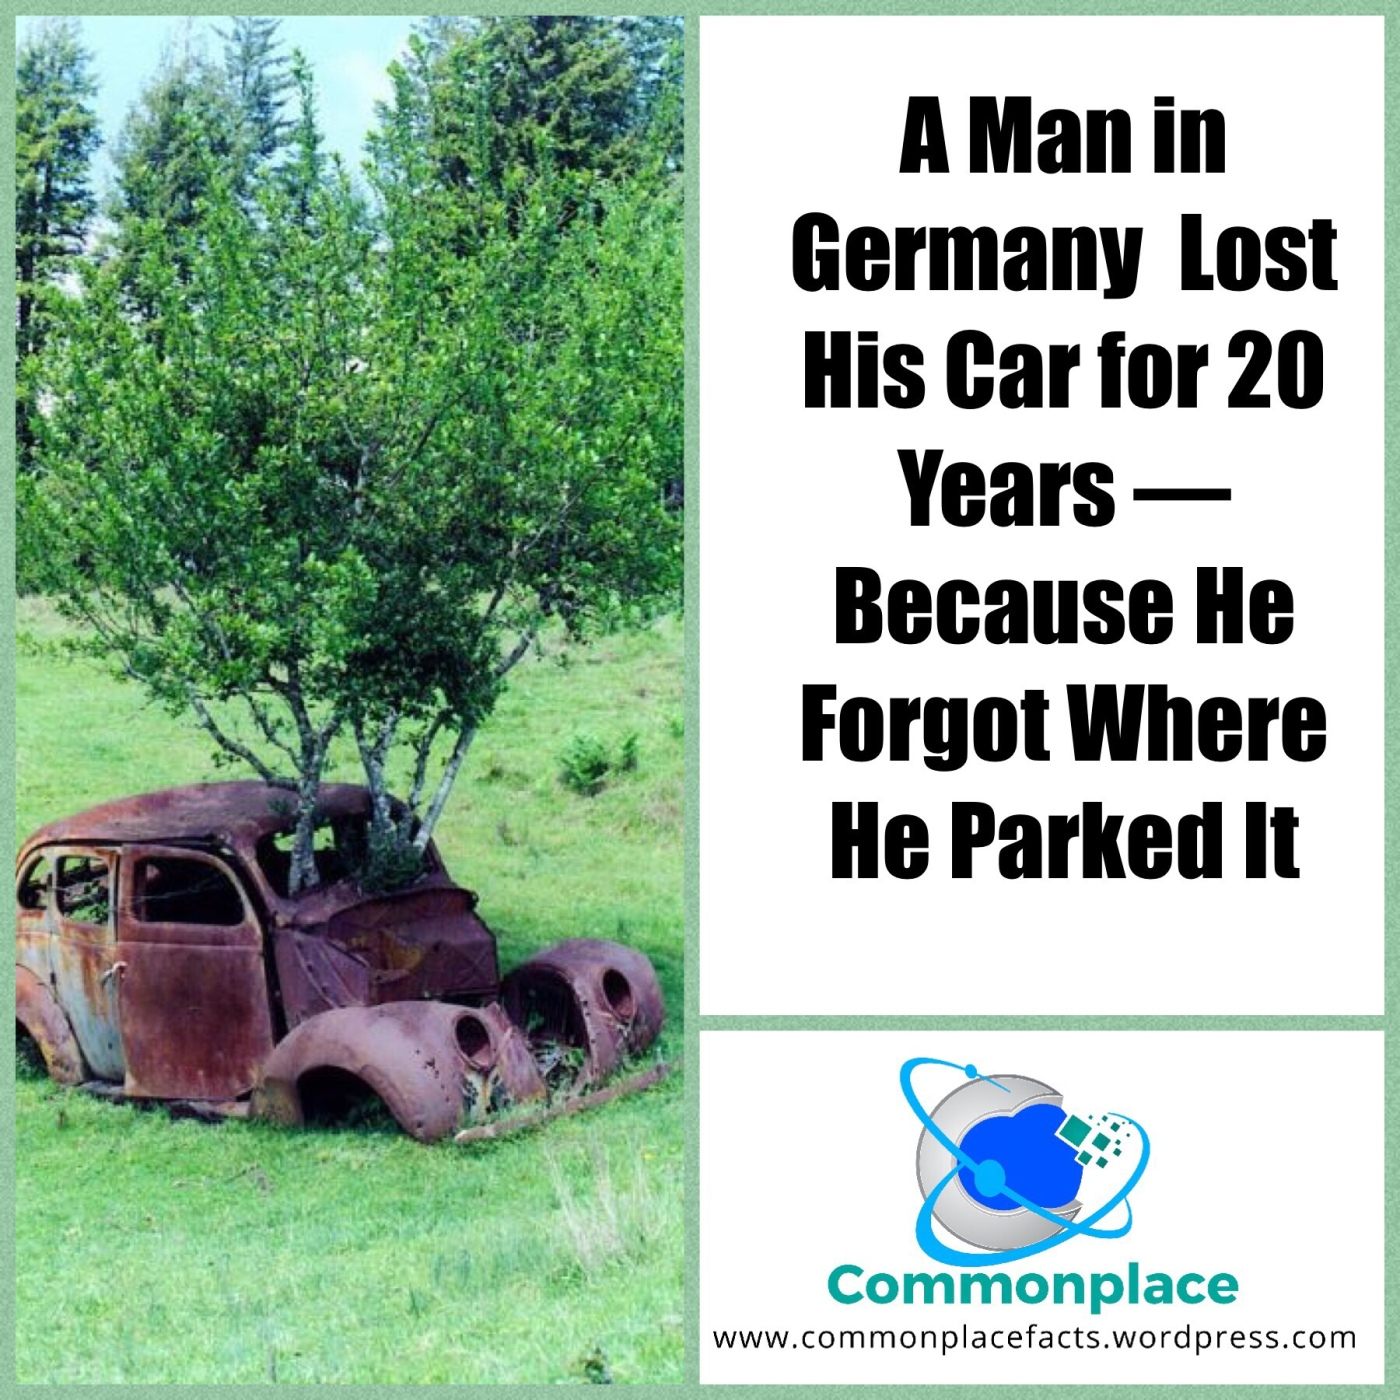 #parking #Volkswagon #forgetfulness #seniormoment